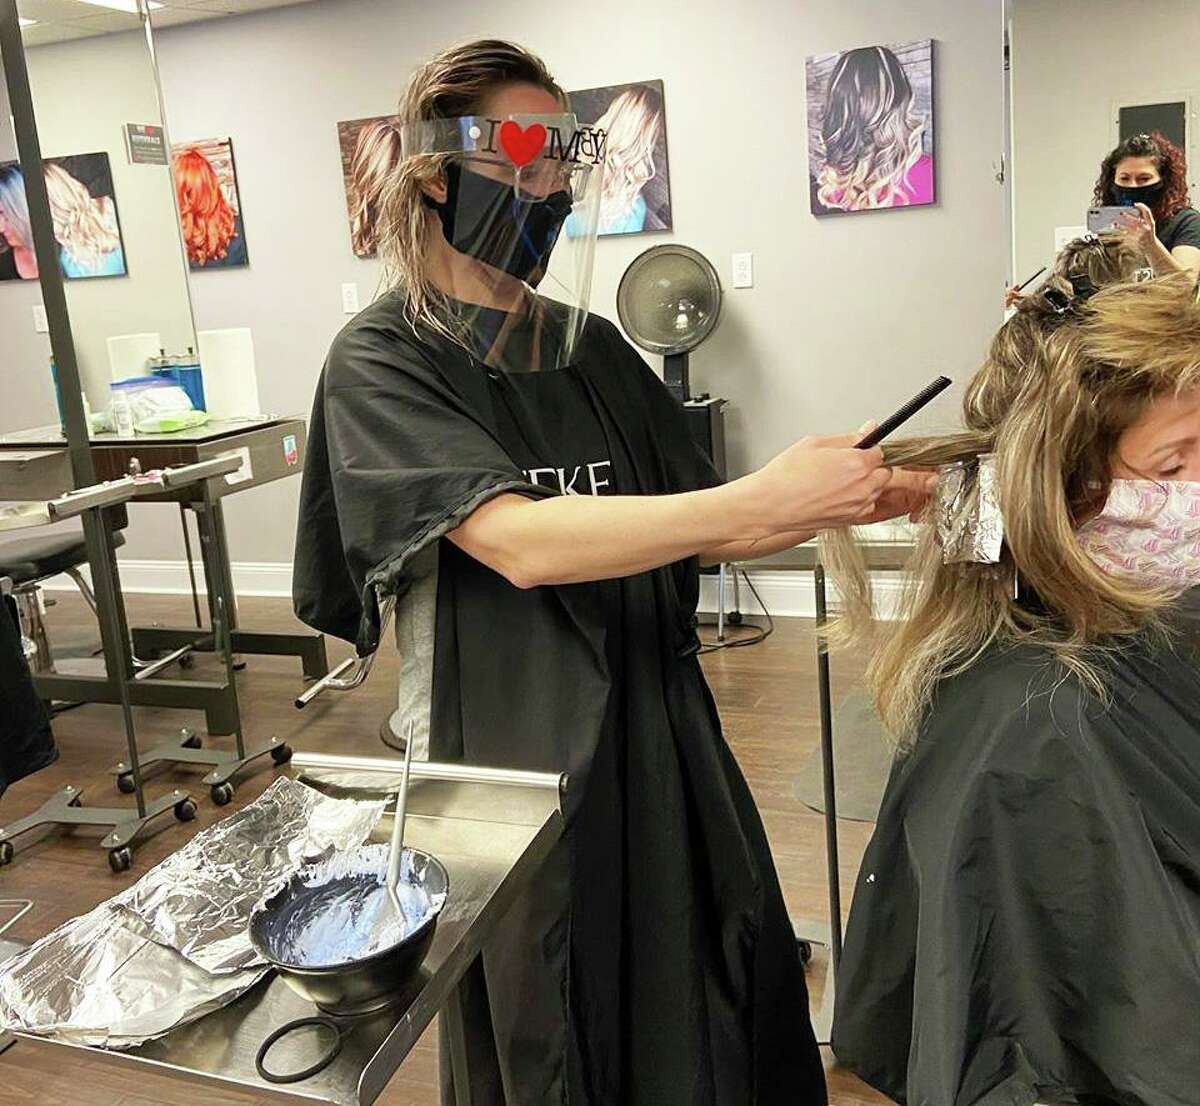 Kim Kelly, a stylist at Jessica's Color Room in Middletown, practices the new coronavirus safety measures on a coworker in preparation for the opening of barber shops and beauty salons during the pandemic. Two days before the scheduled reopening, the governor pushed it off to June 1.